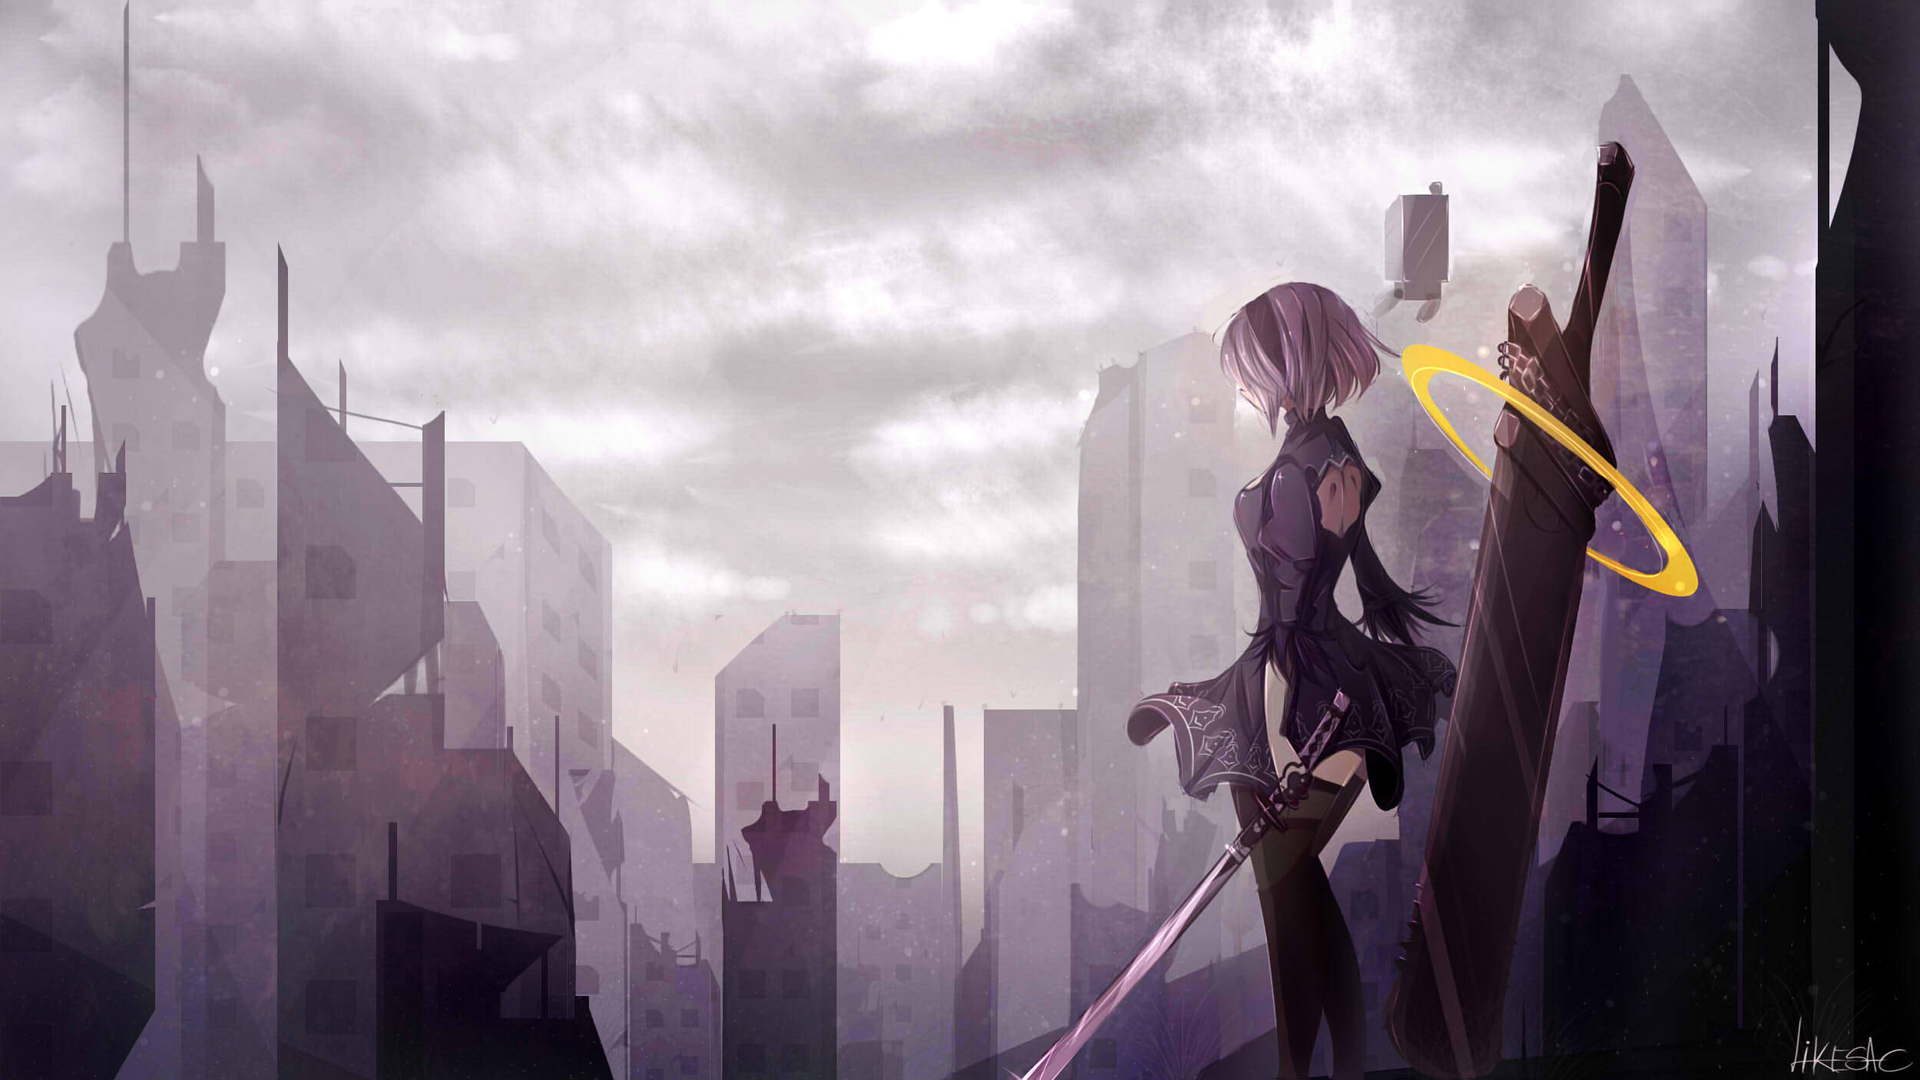 1920x1080 Nier Automata Anime Art Laptop Full Hd 1080p Hd 4k Wallpapers Images Backgrounds Photos And Pictures